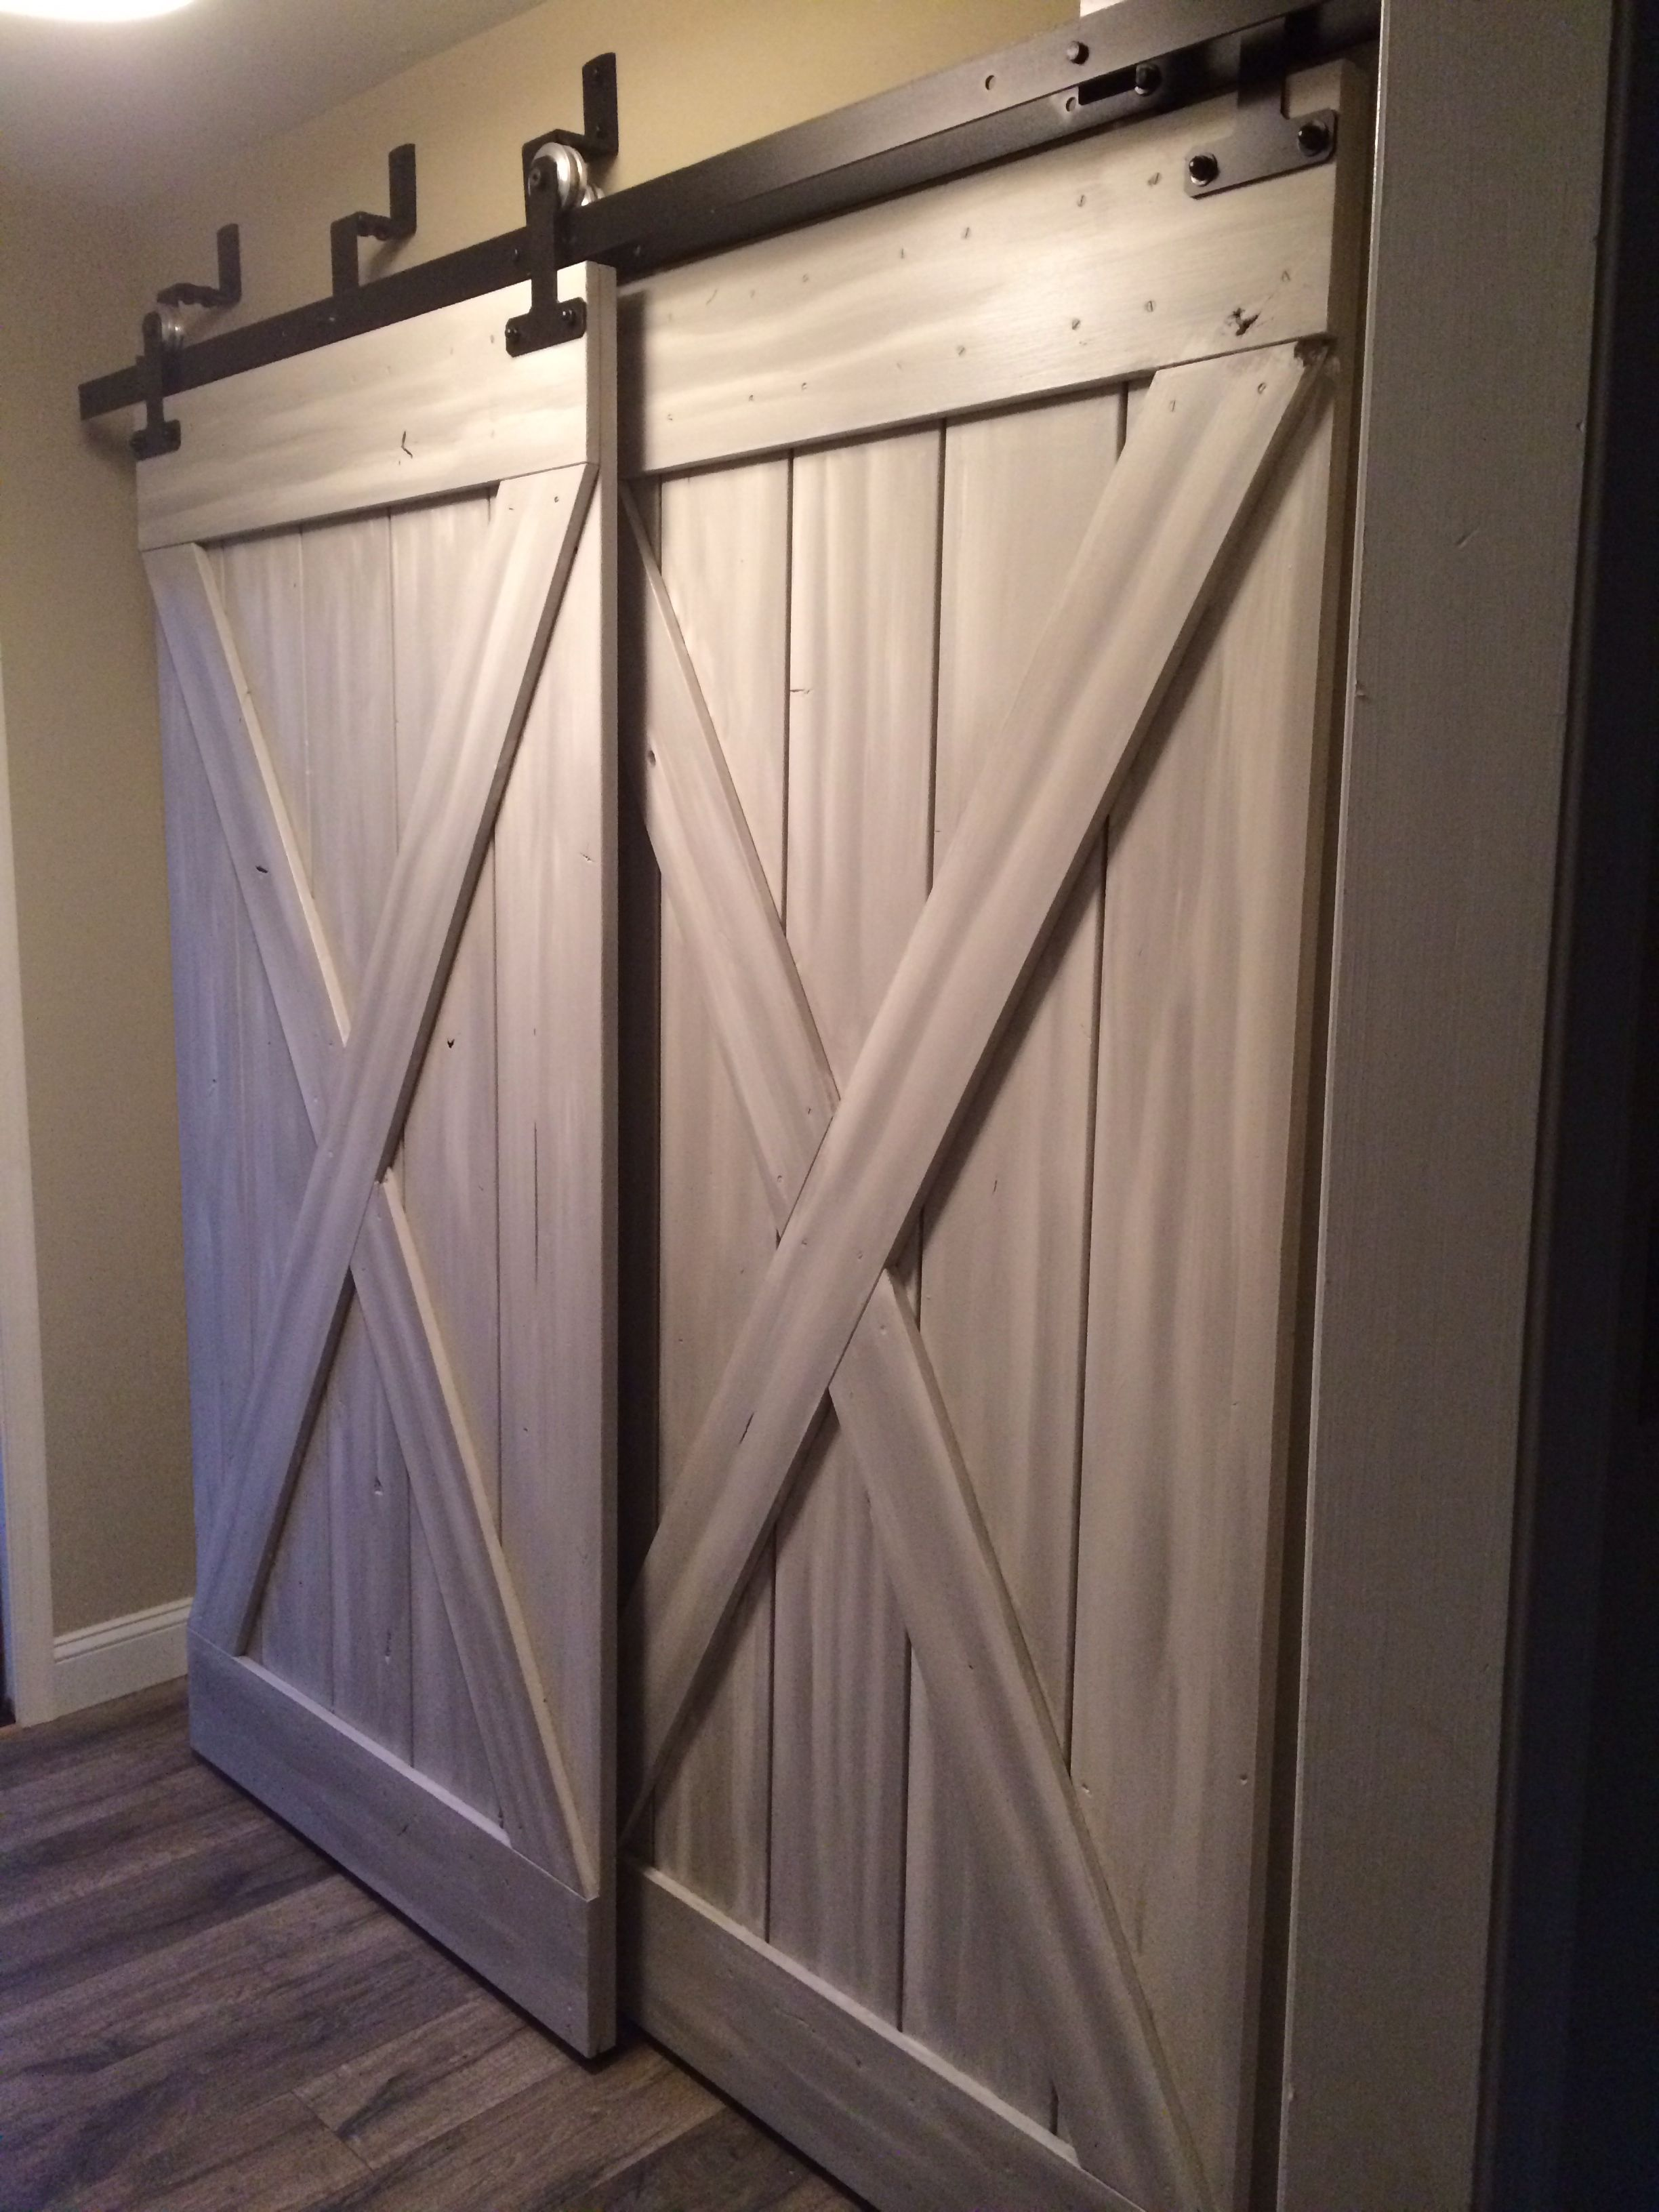 Bypass Barn Door Hardware Sliding Barn Doors Sliding Barn Doors Bypass